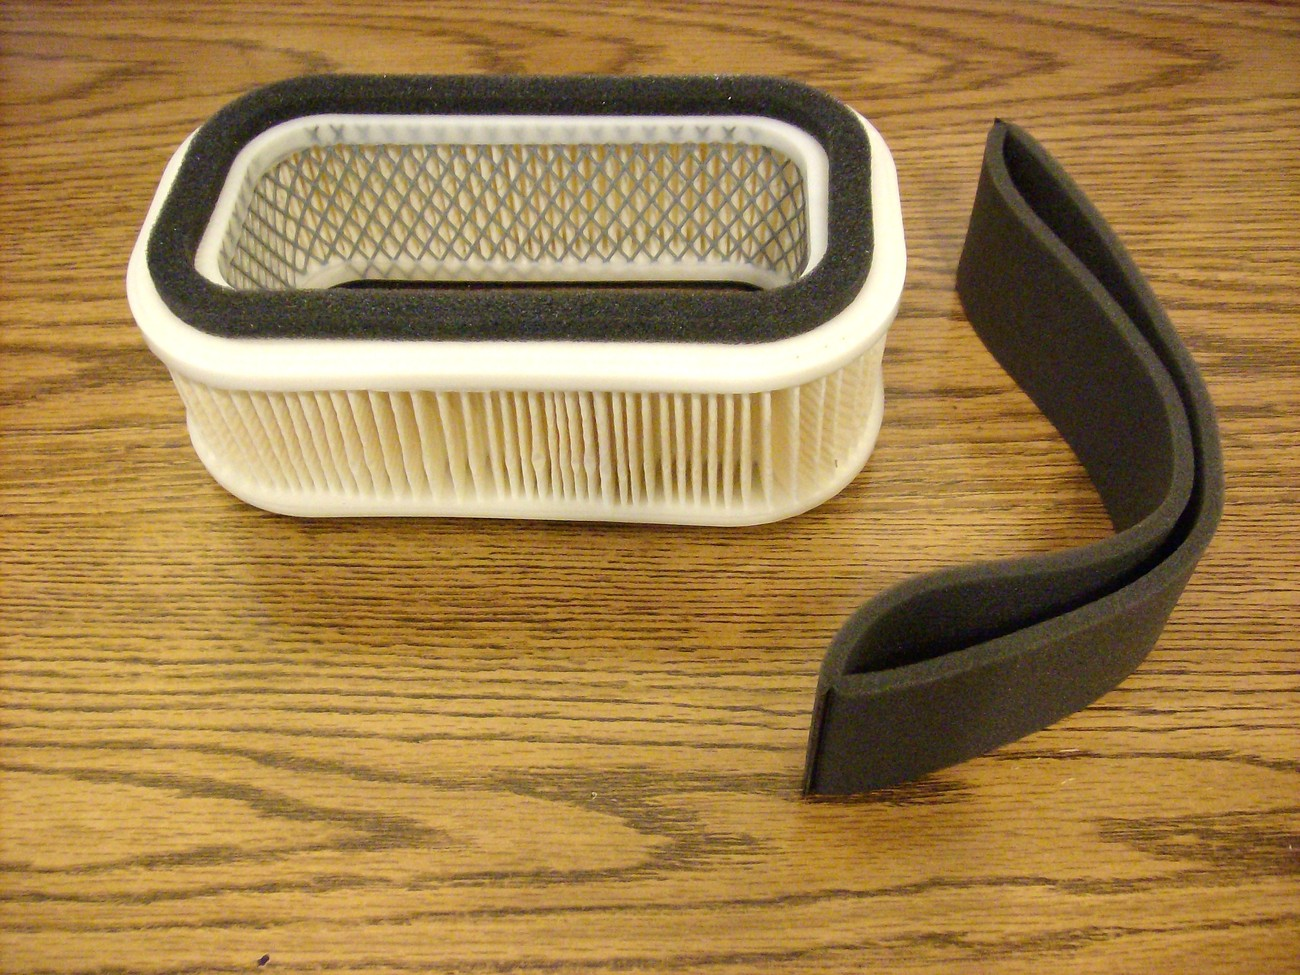 Kawasaki FD620D and FD661D air filter 110132139, 110132204, 110292005